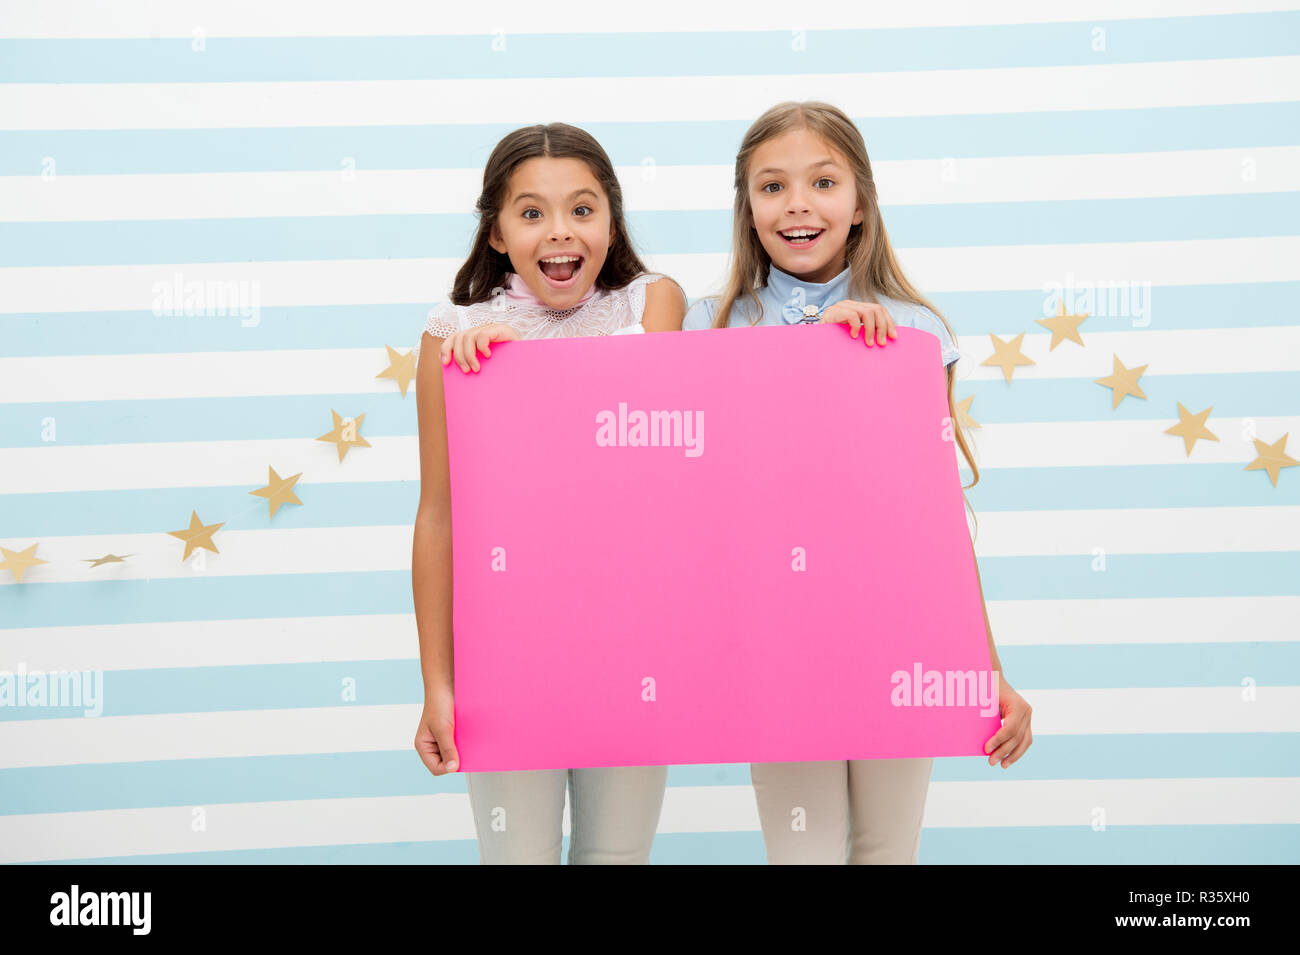 Amazing surprising news. Girl hold announcement banner. Girls kids holding paper banner for announcement. Children happy with blank paper announcement copy space. Kids announcement concept. - Stock Image